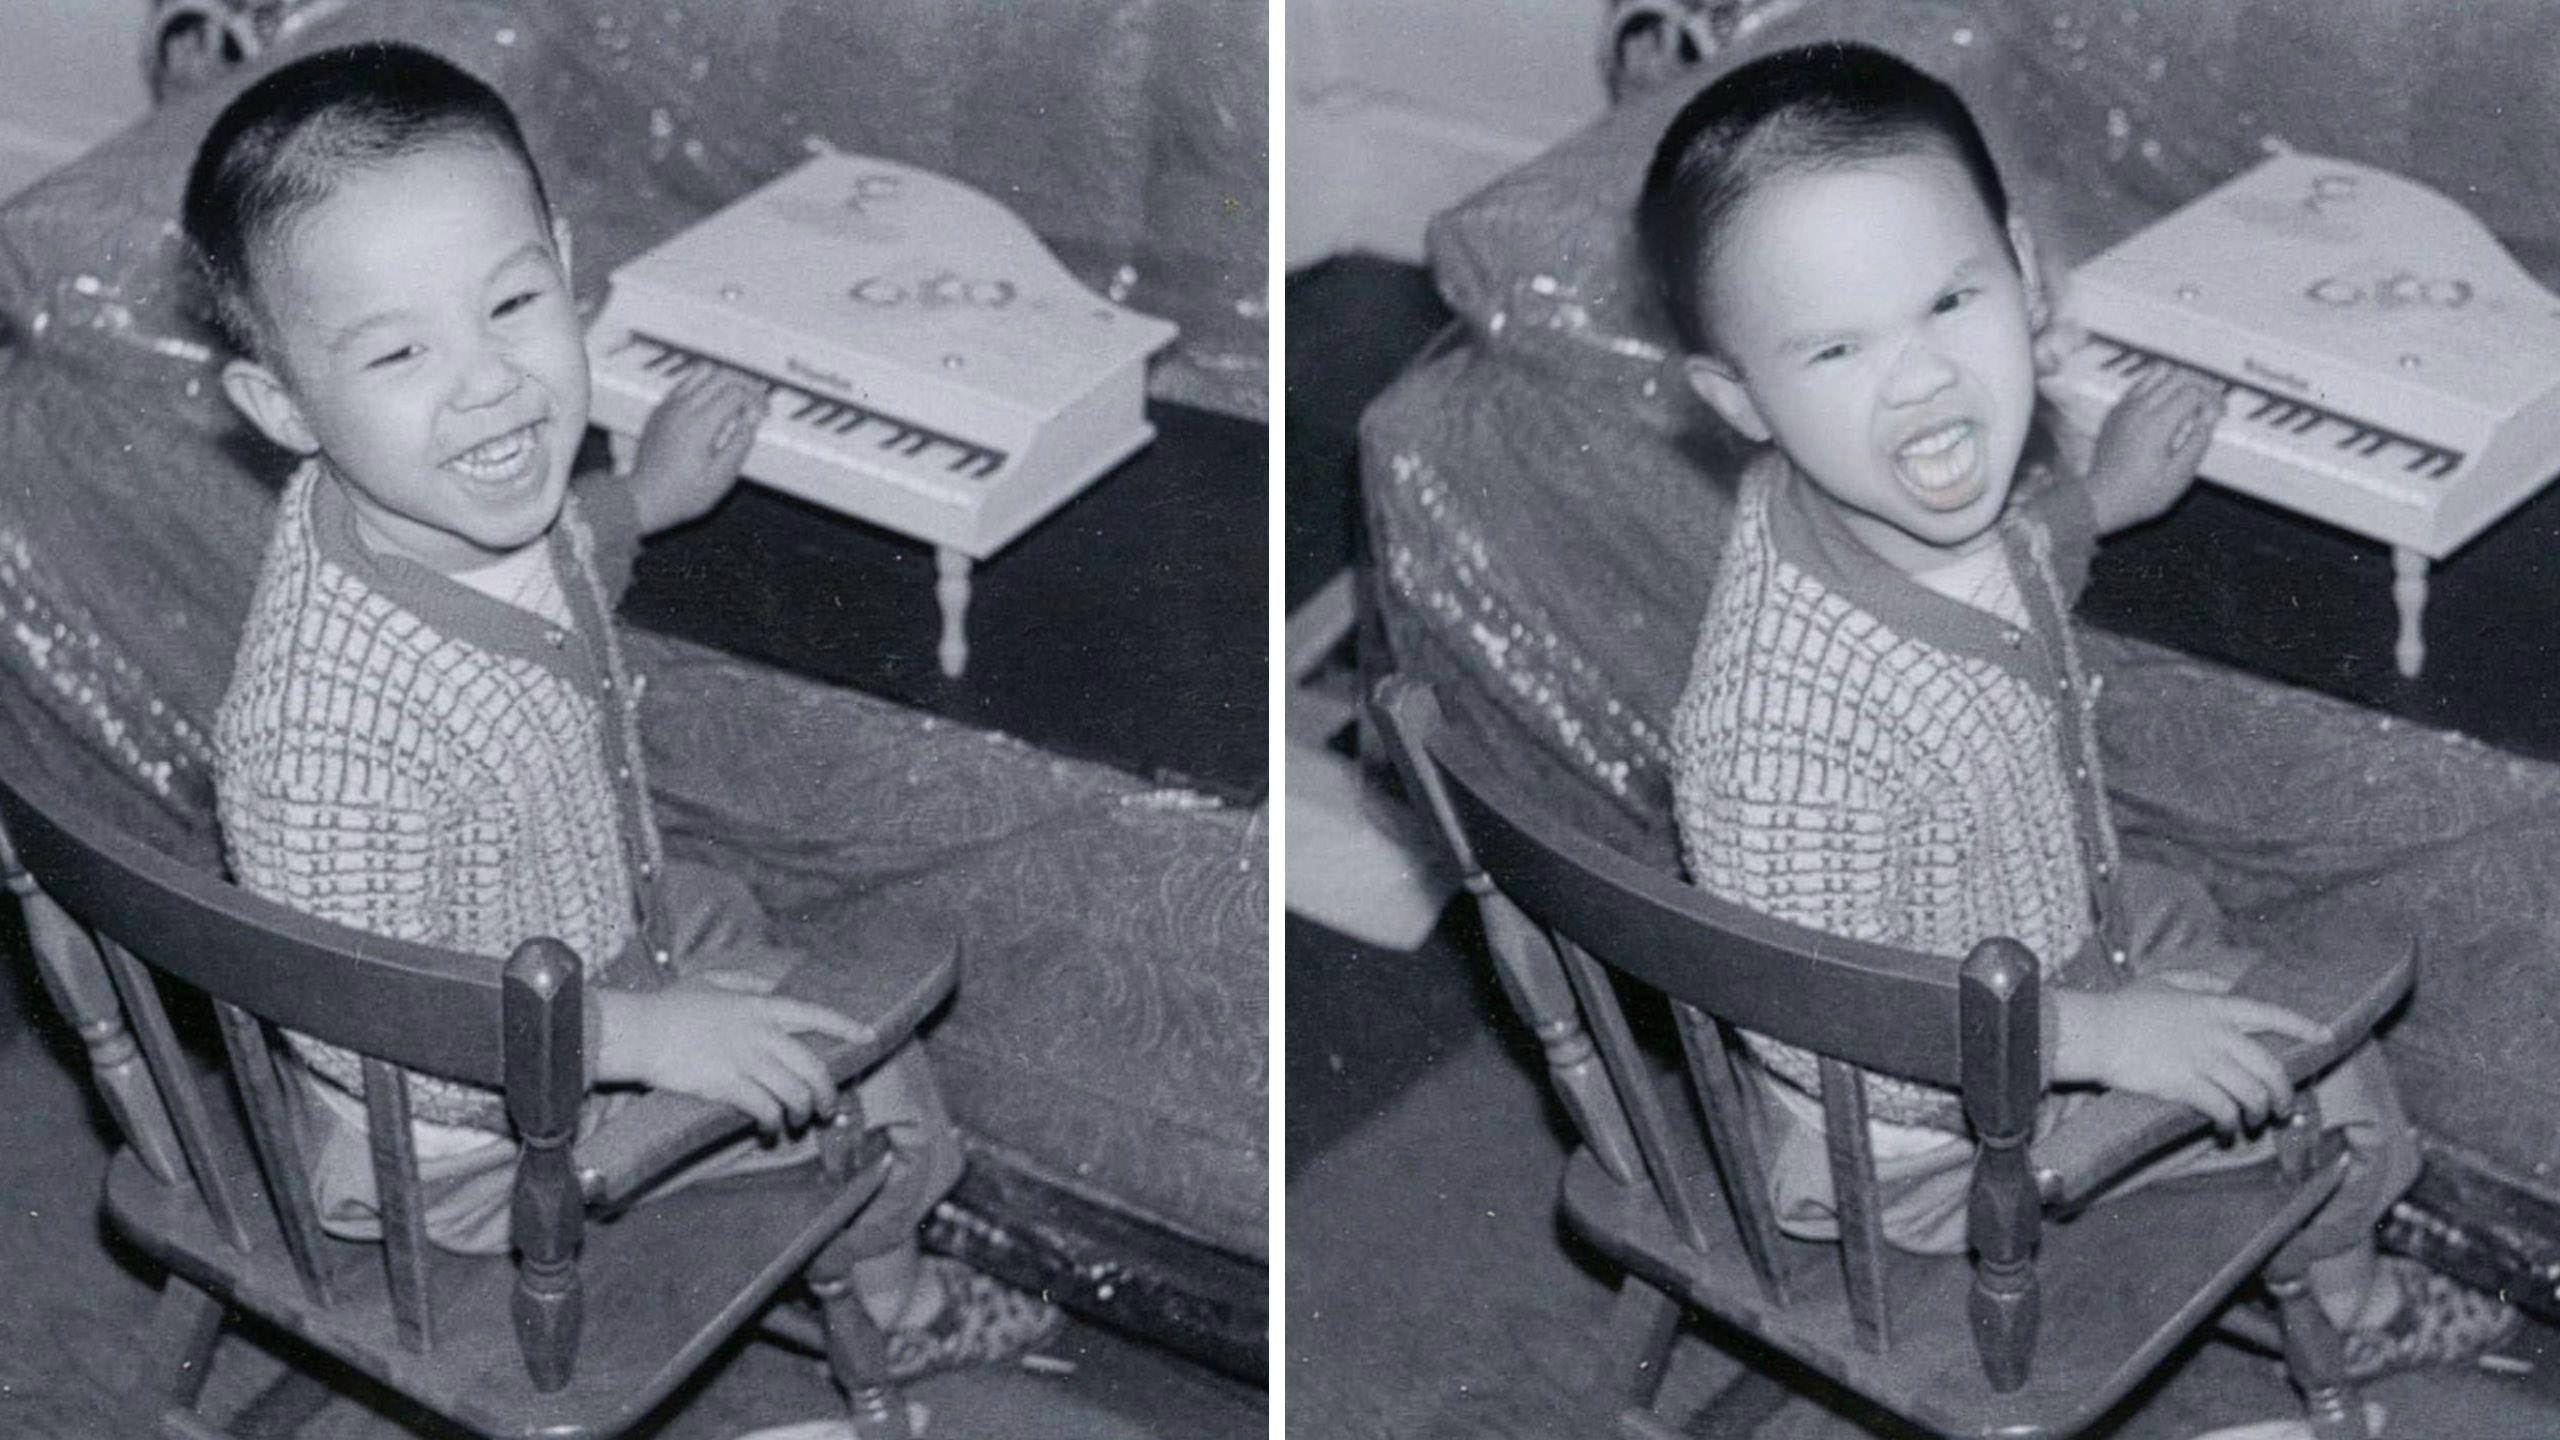 ken-playing-piano1-child-straightened-Photoshop-neural-filters-happy-angry-HEADER-photofocus-scaled copy